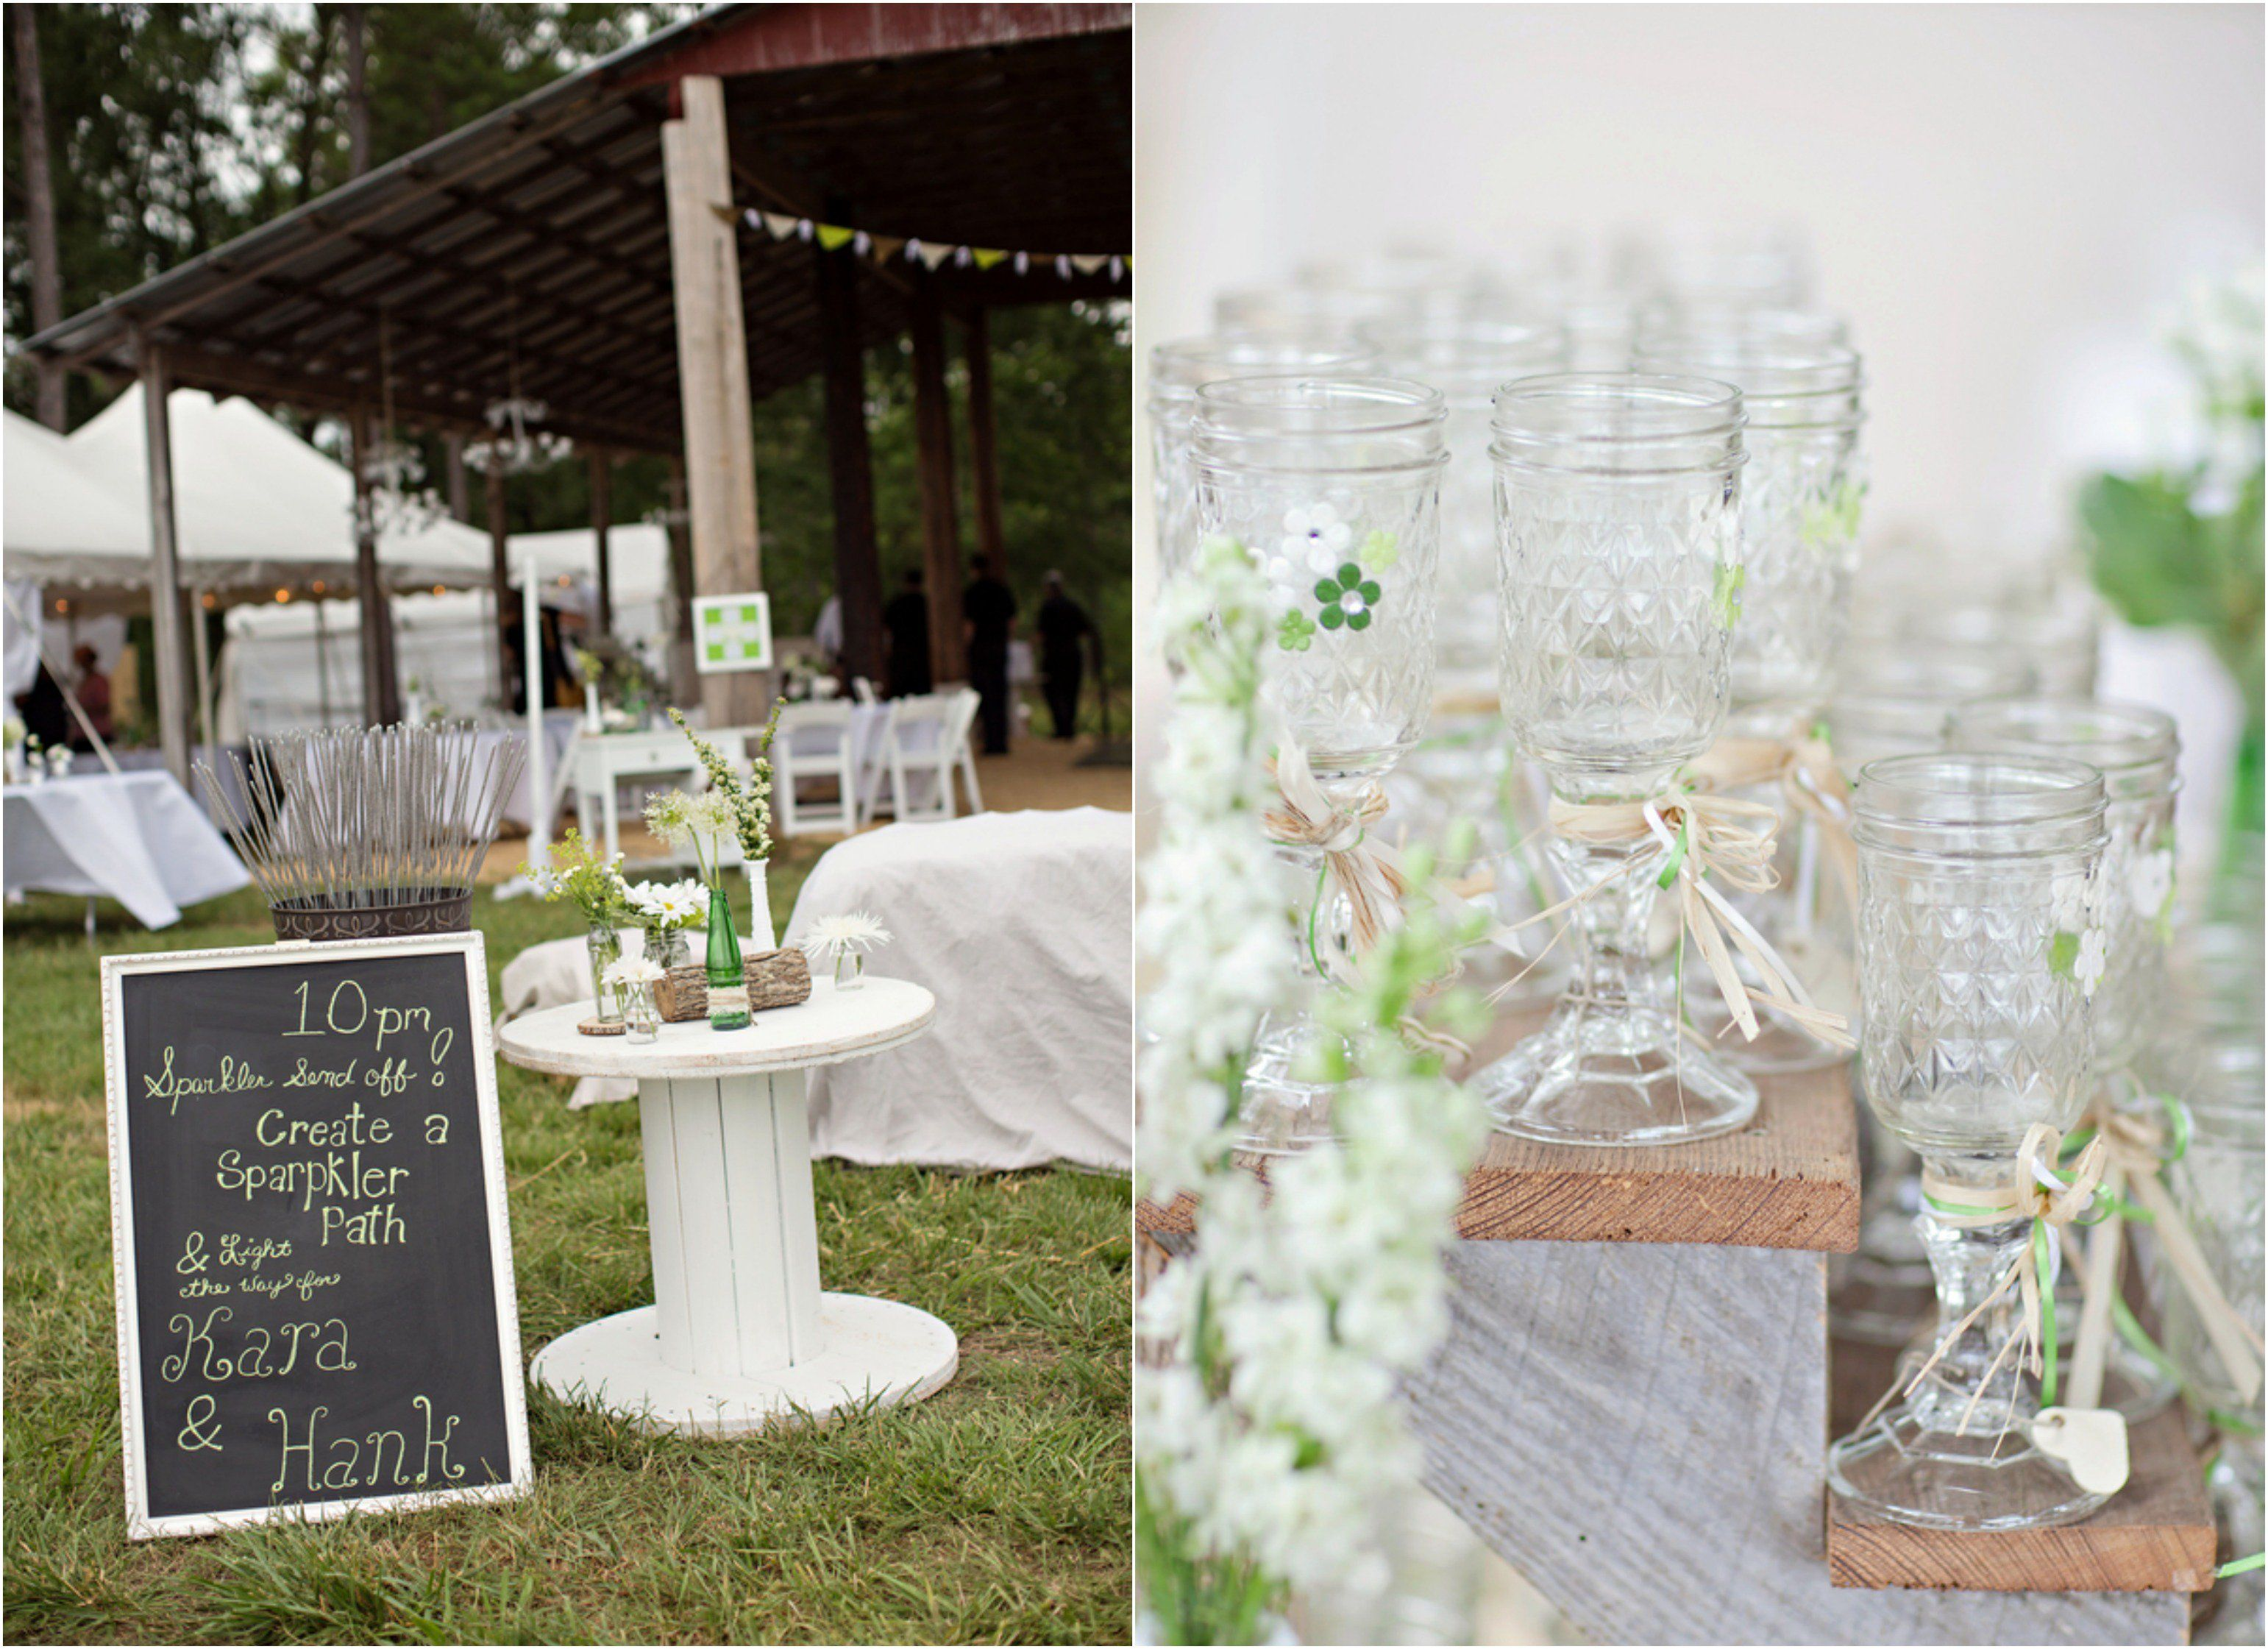 Wedding decorations country  Georgia Barn Wedding With Vintage Style Decorations  Country